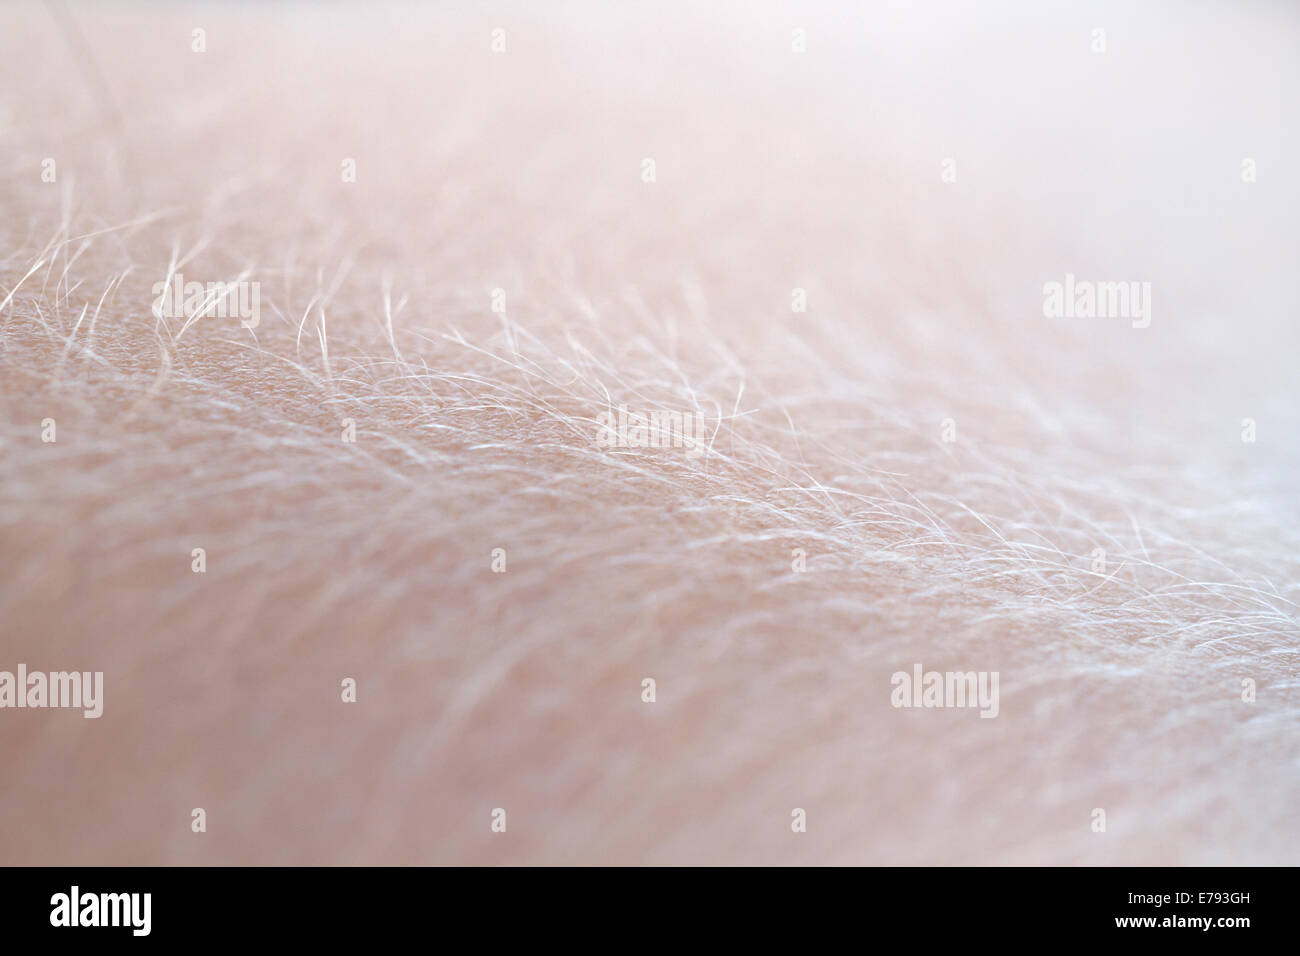 extreme close up skin - Stock Image